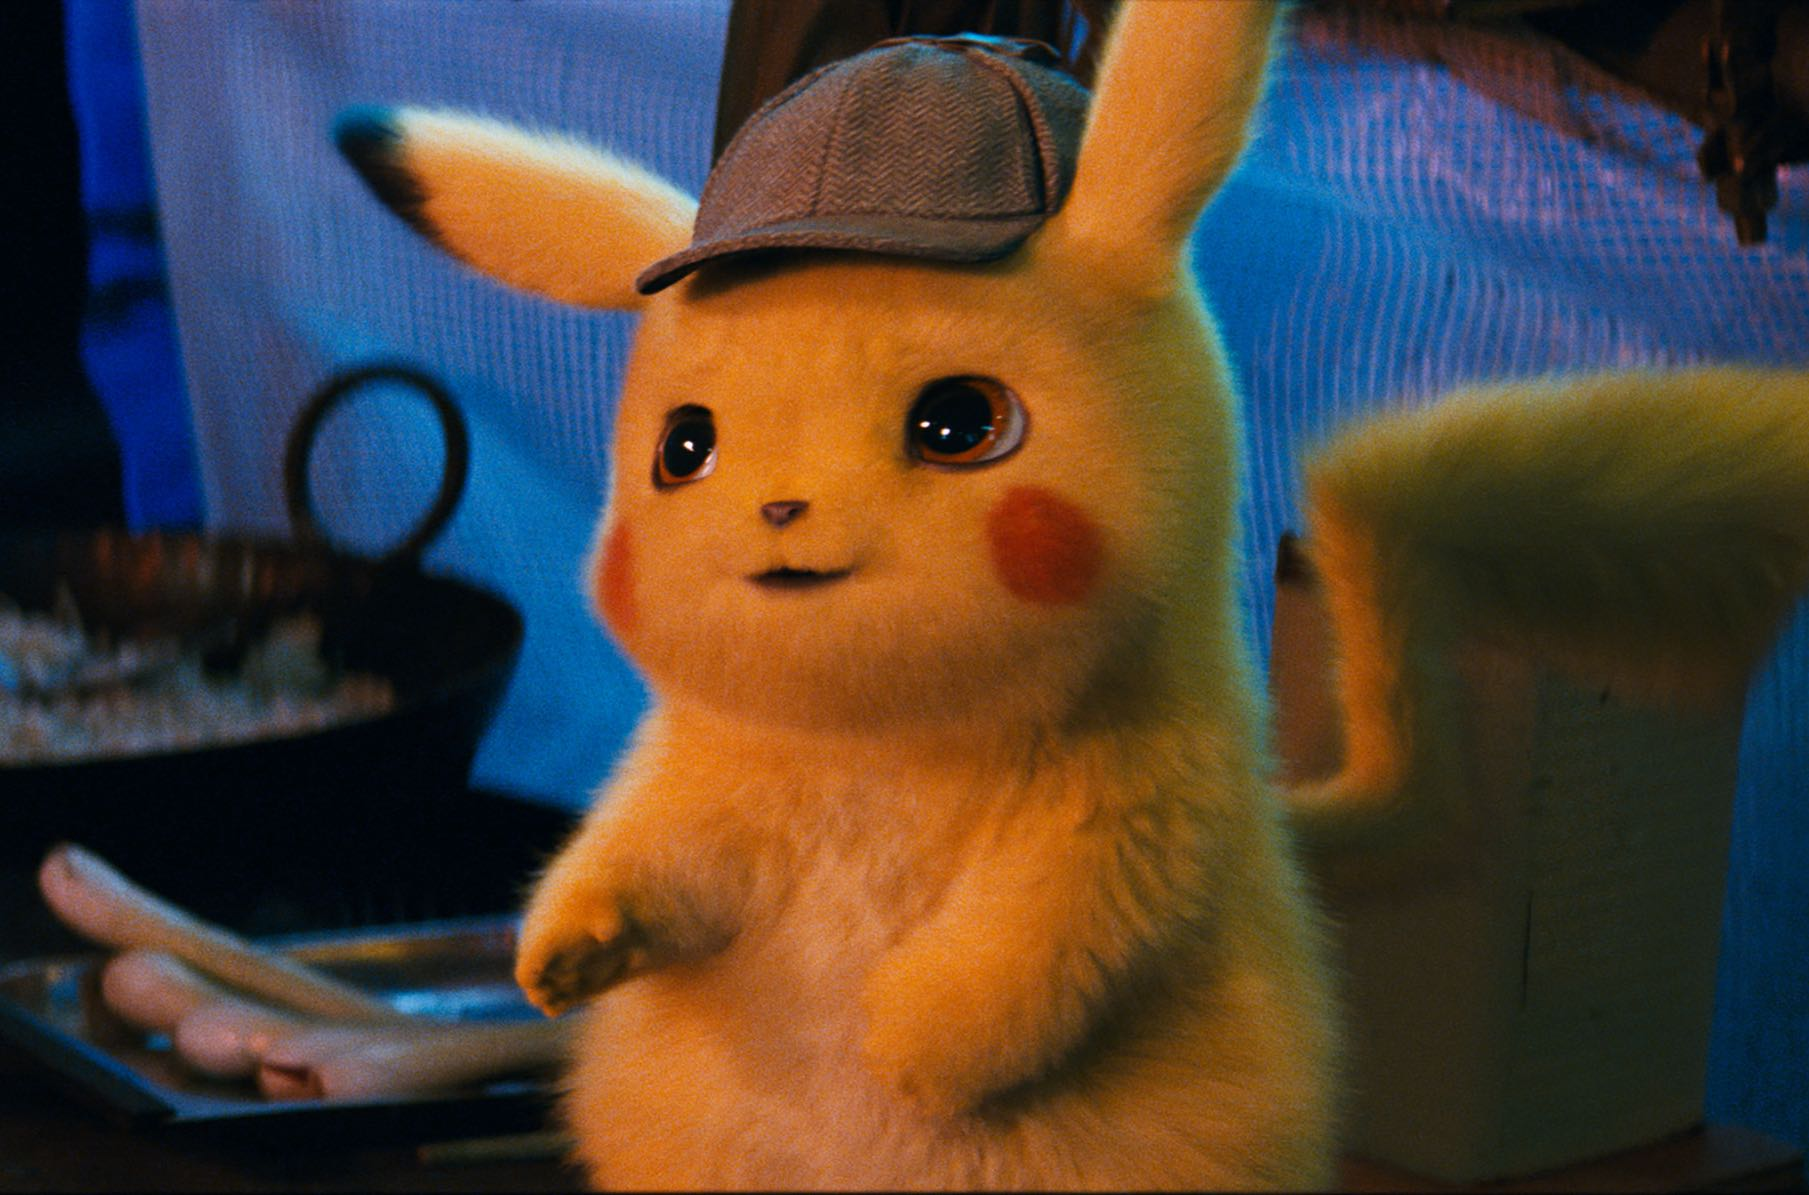 Detective Pikachu has themes that feel more suited to the adults in the crowd, though there are plenty of moments for kids to love as well.